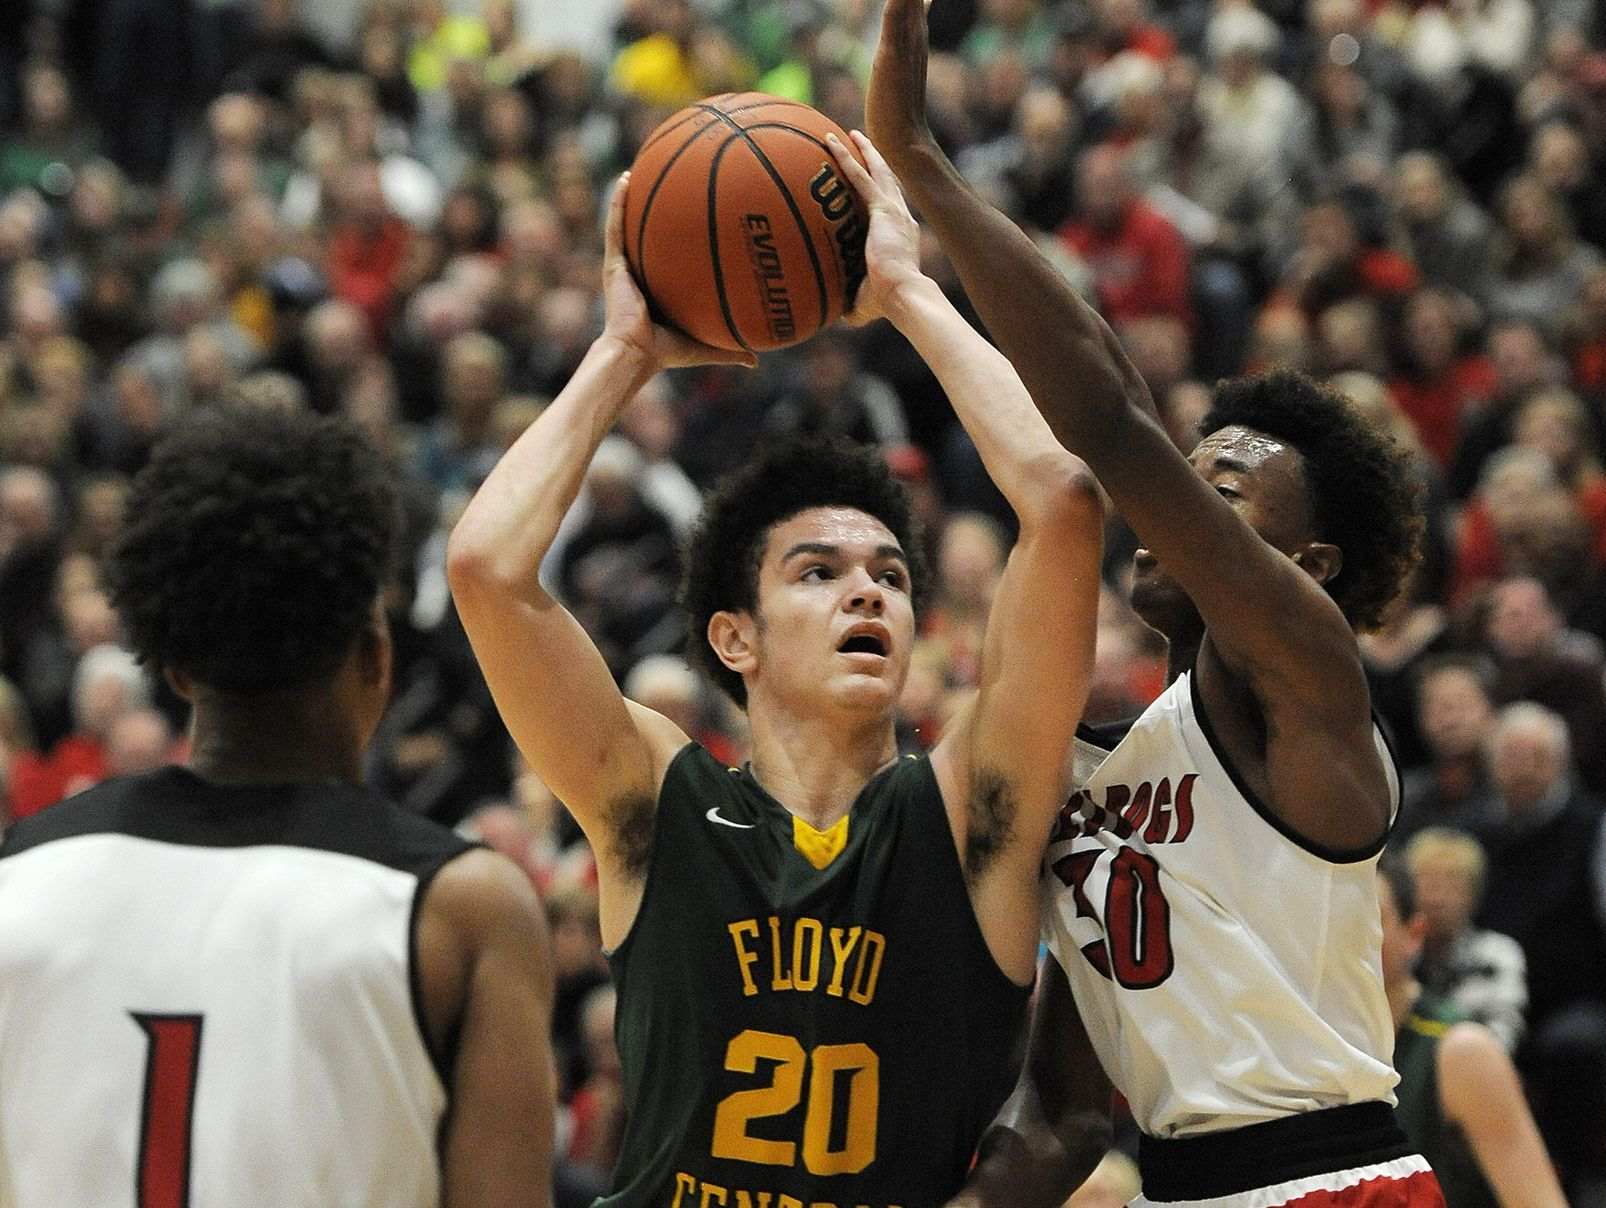 Floyd Central's Cobie Barnes (20) drives against New Albany's Romeo Langford (left) and Julien Hunter (right) on Friday at New Albany High School. (Photo by David Lee Hartlage, Special to The Courier-Journal) Dec. 9, 2016